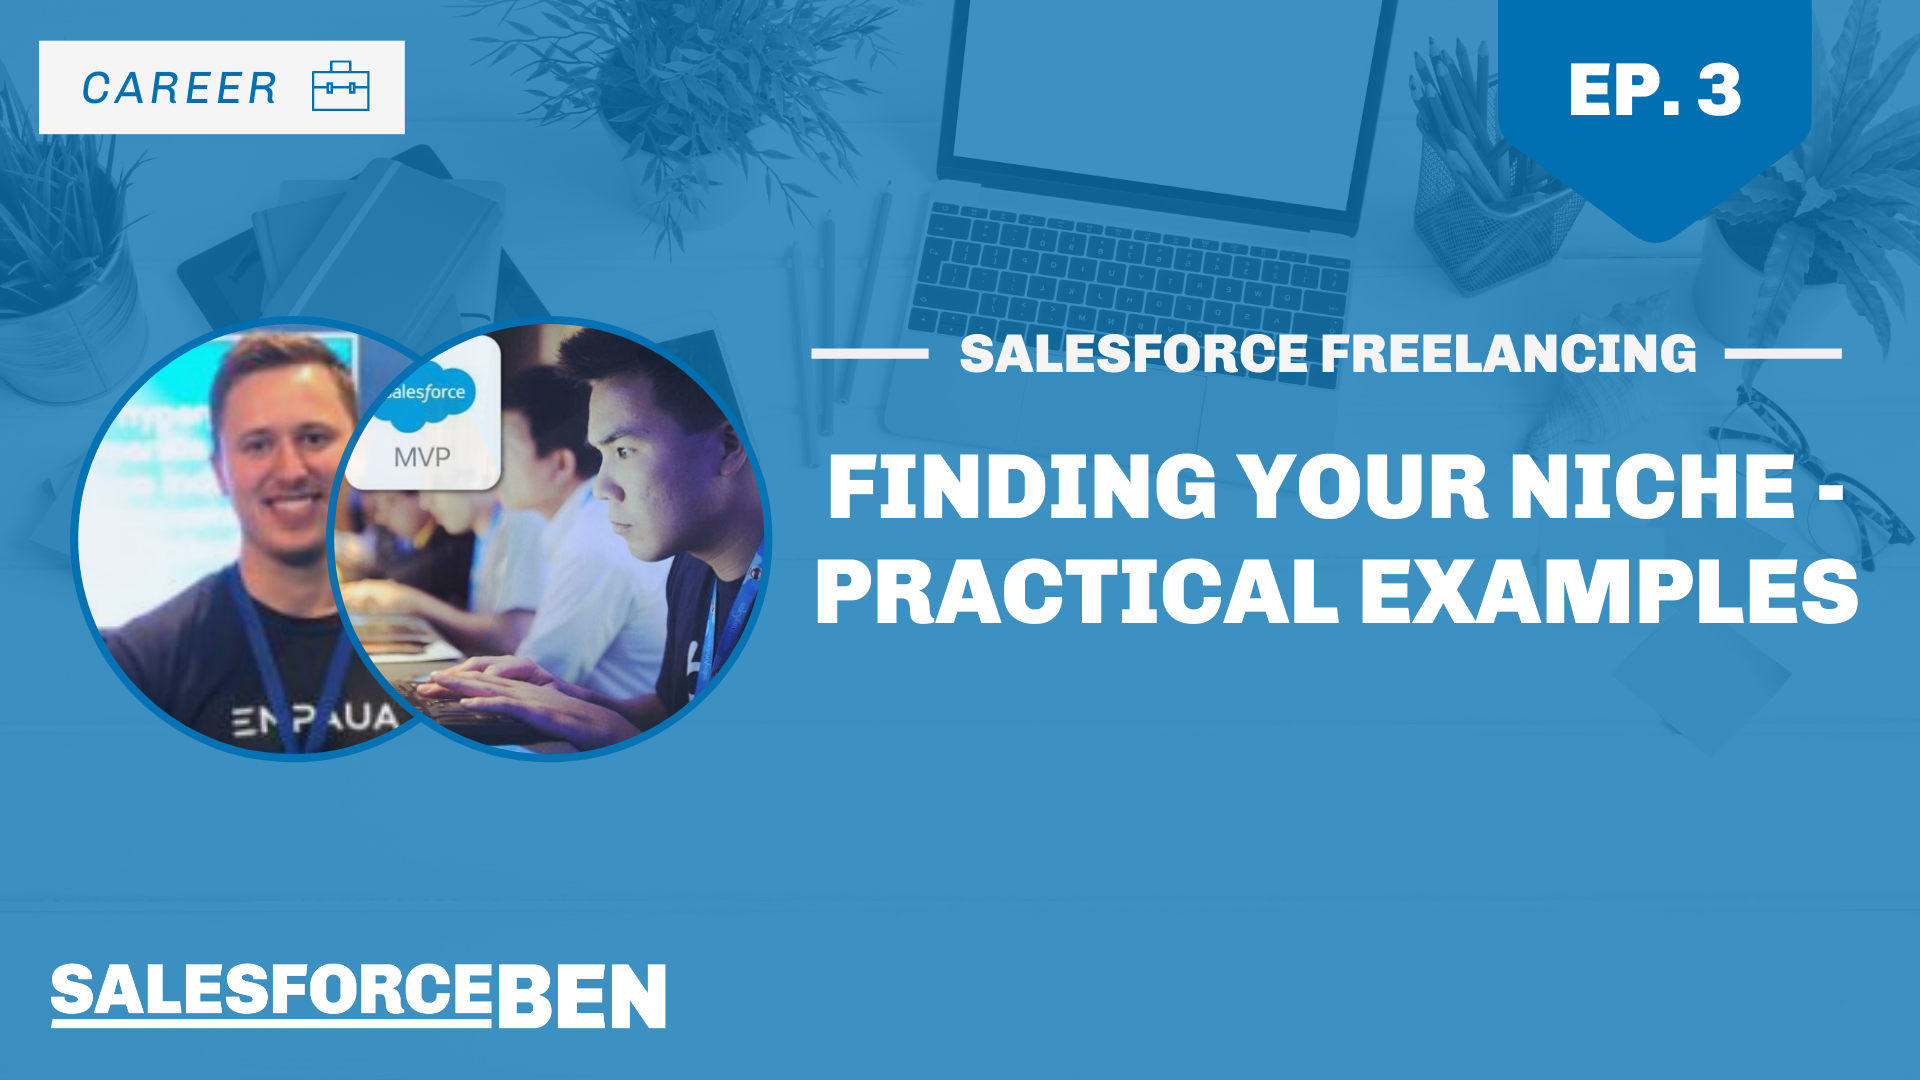 Salesforce Freelancing: Finding Your Niche – Practical Examples (Ep. 3)